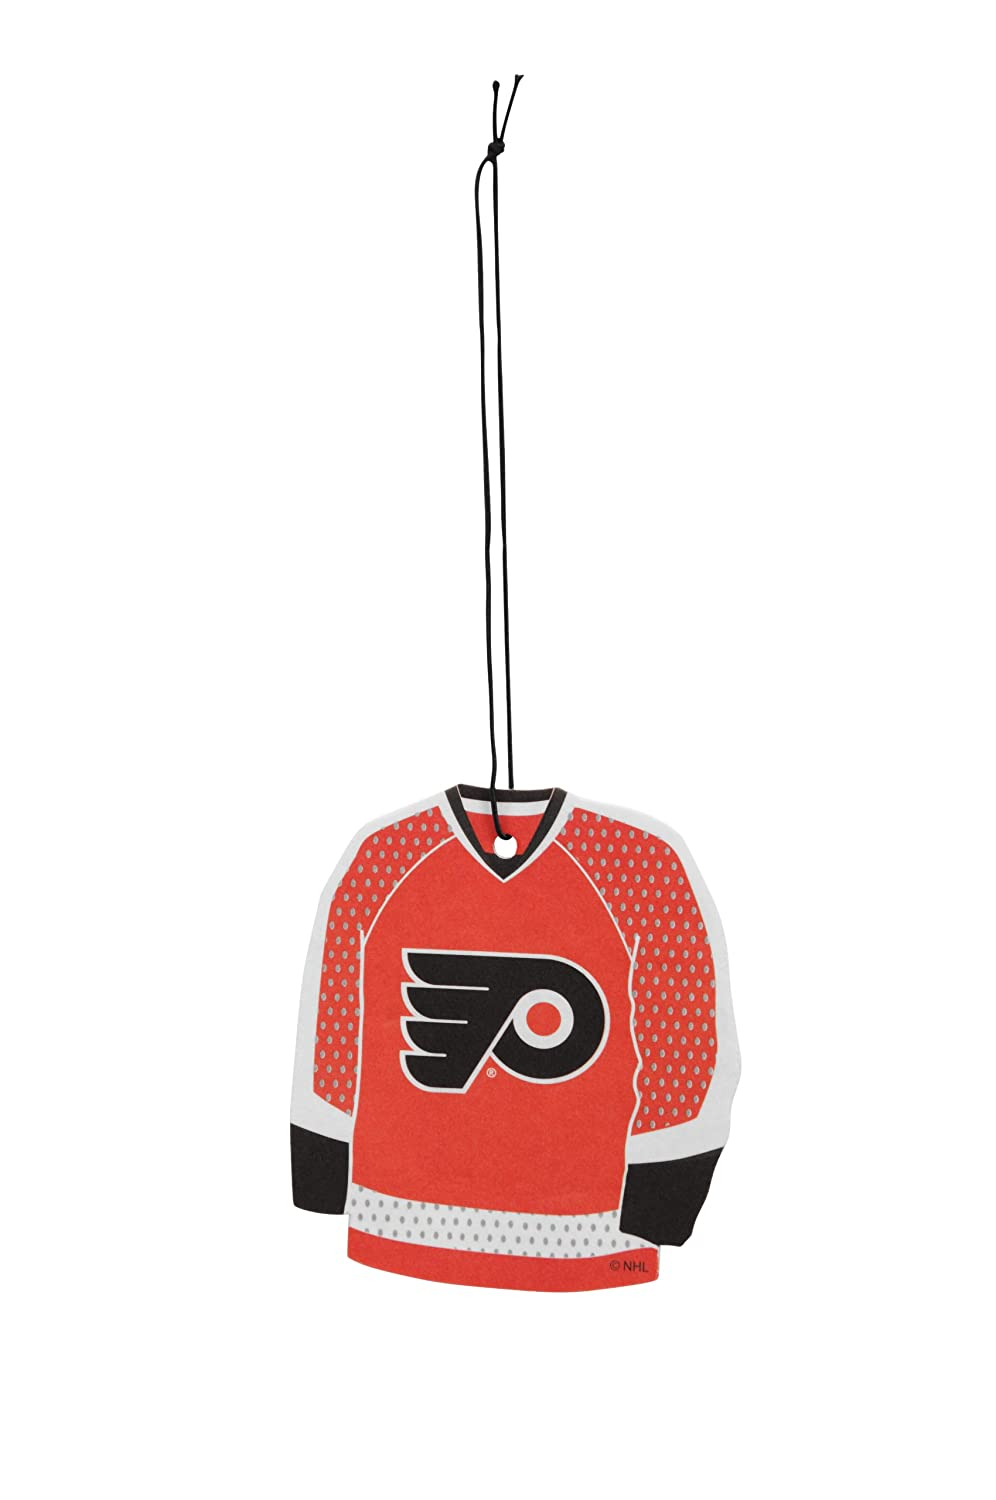 NHL Philadelphia Flyers Air Freshener JF Sports FLYAIR